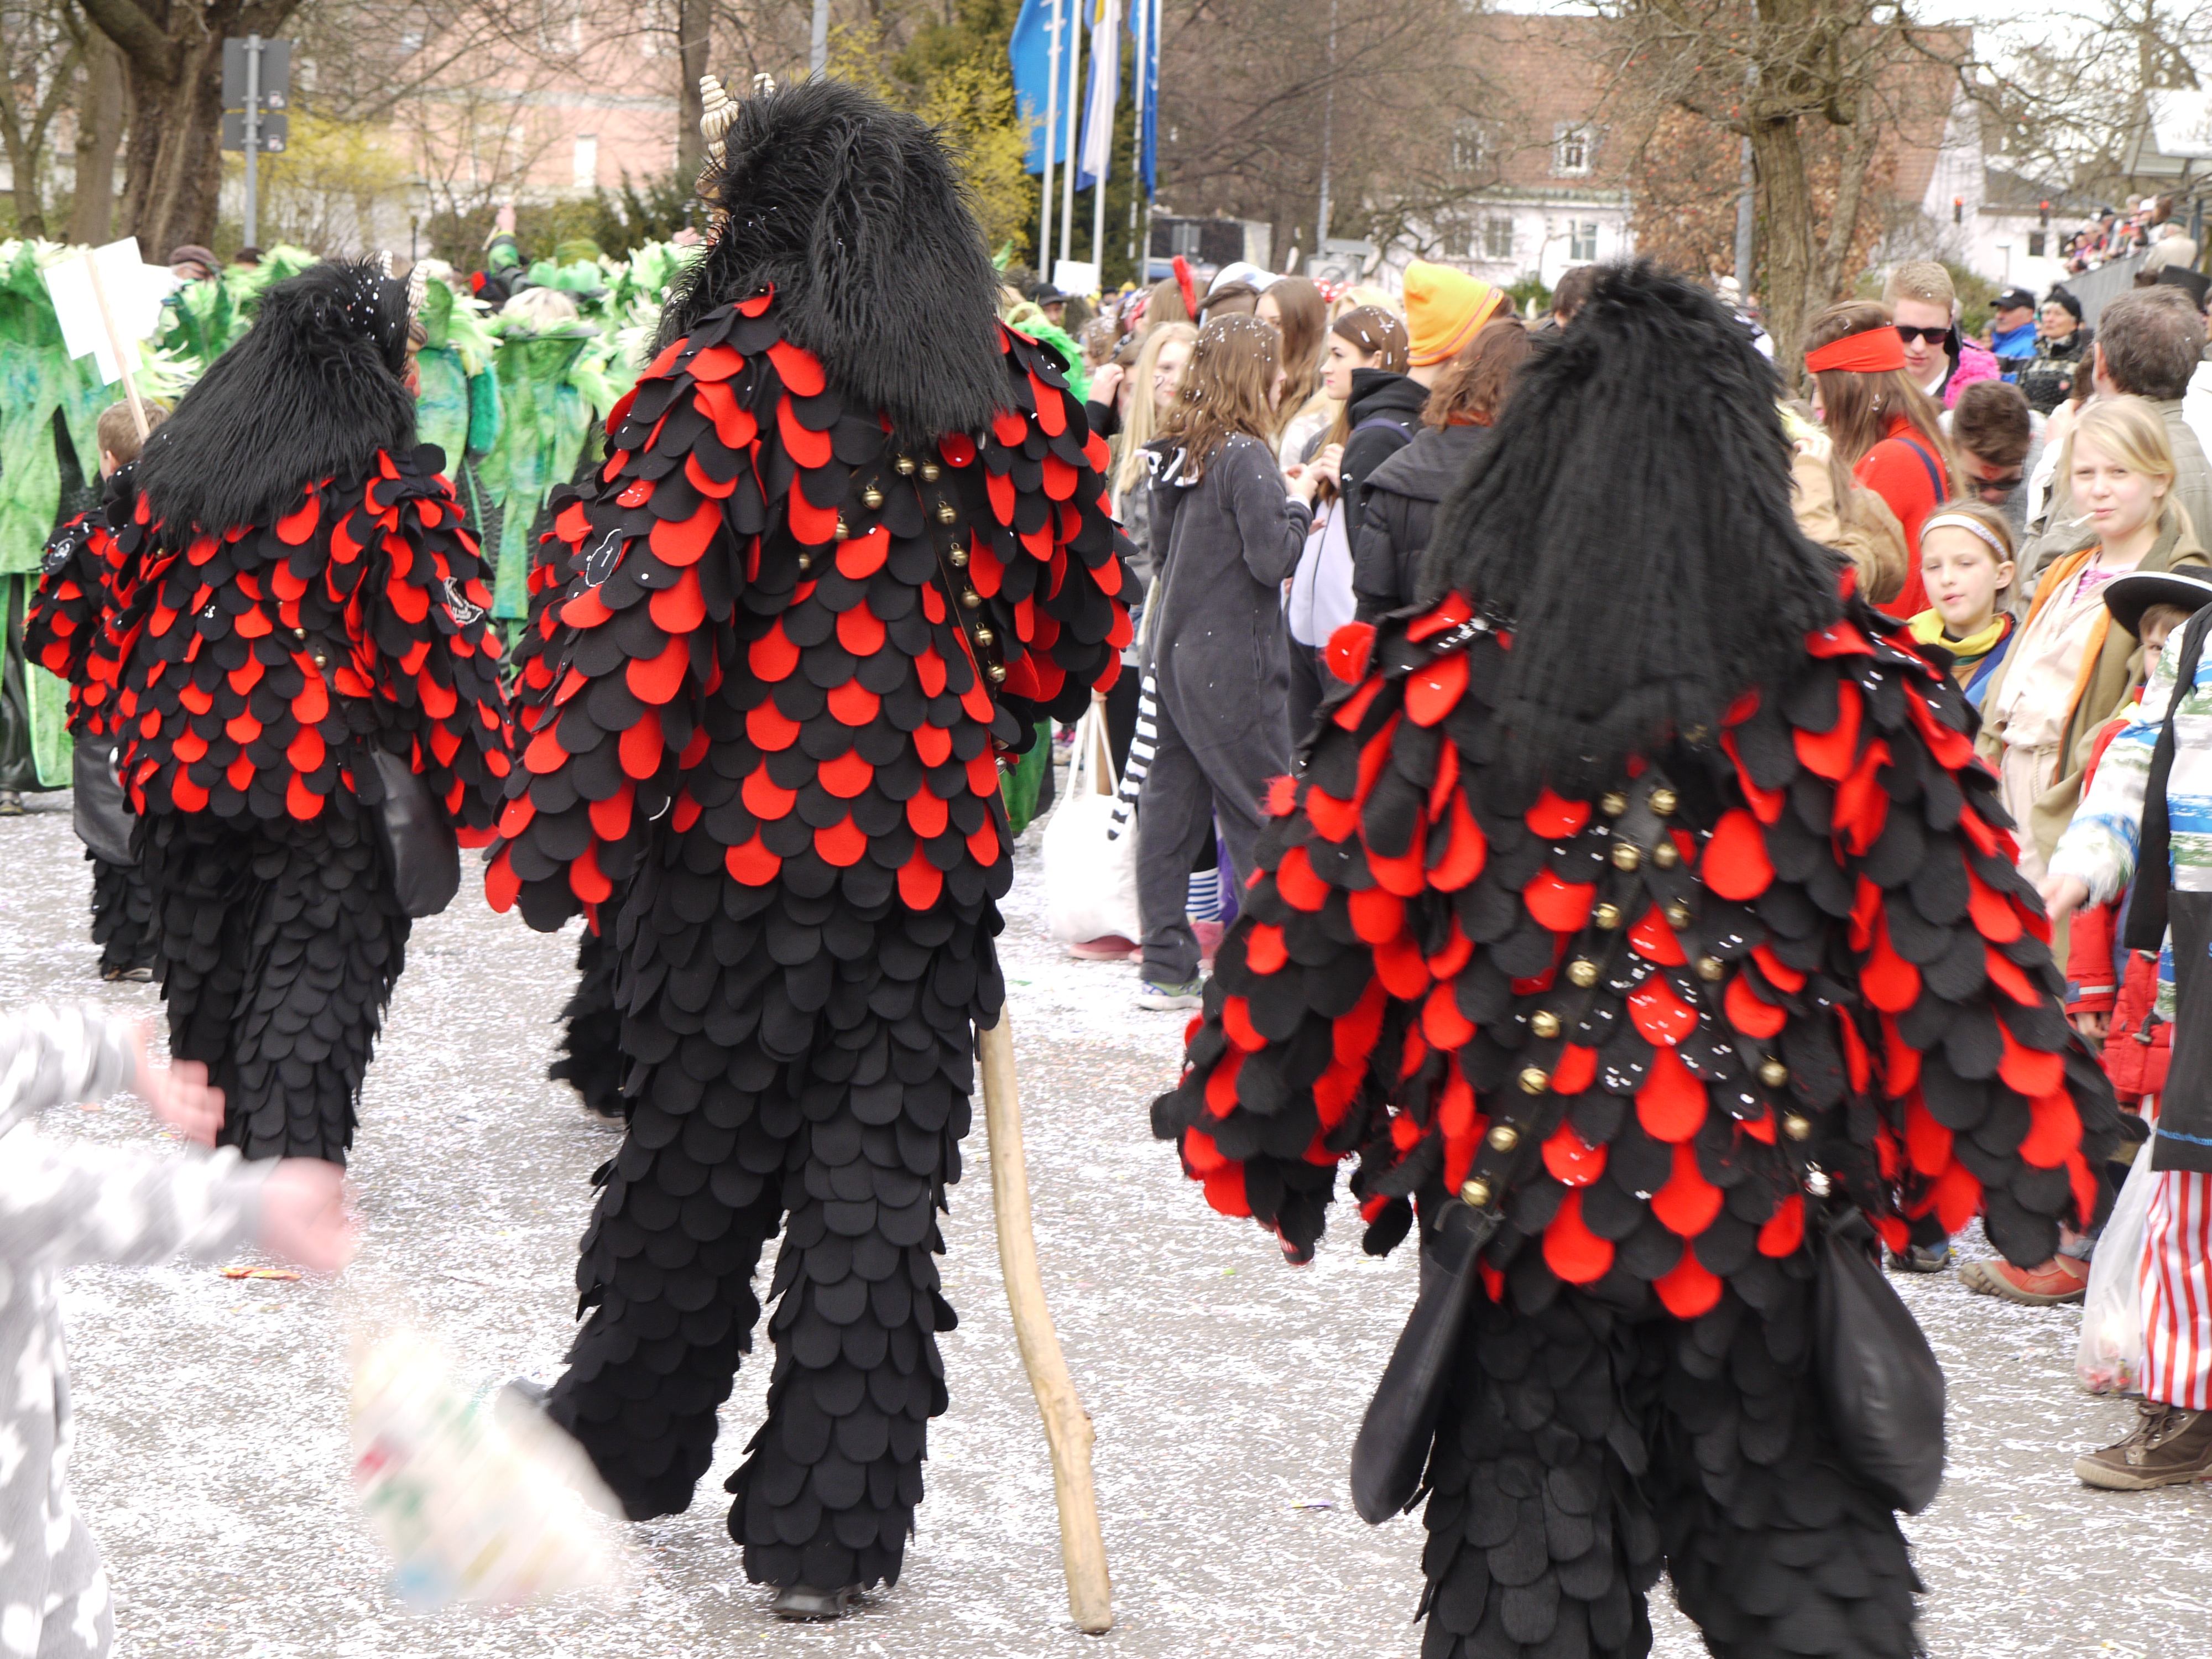 Elaborate hand made carnival costumes